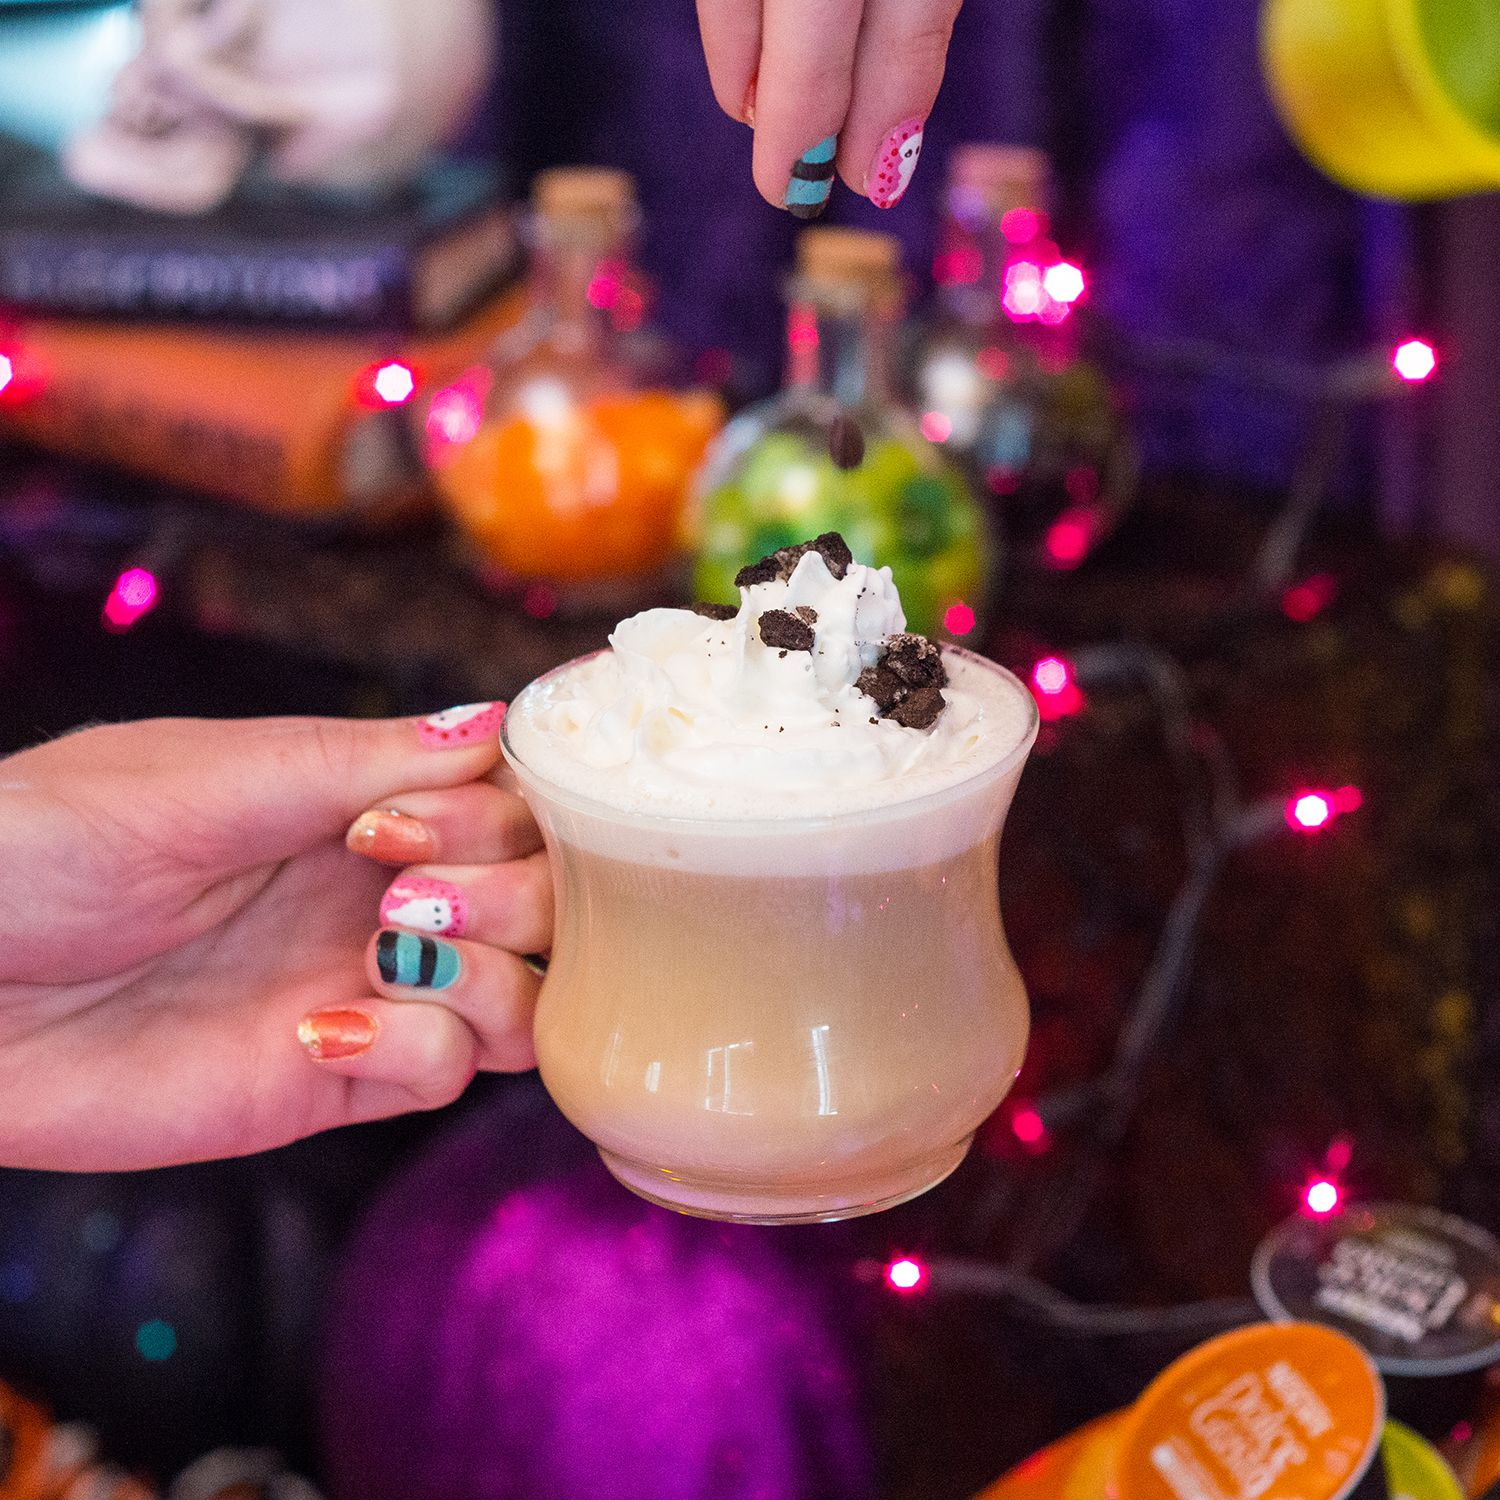 The perfect latte sprinkled with a #CookieCrumble 'monster munch.' #Halloween #dolcegusto #NailArt